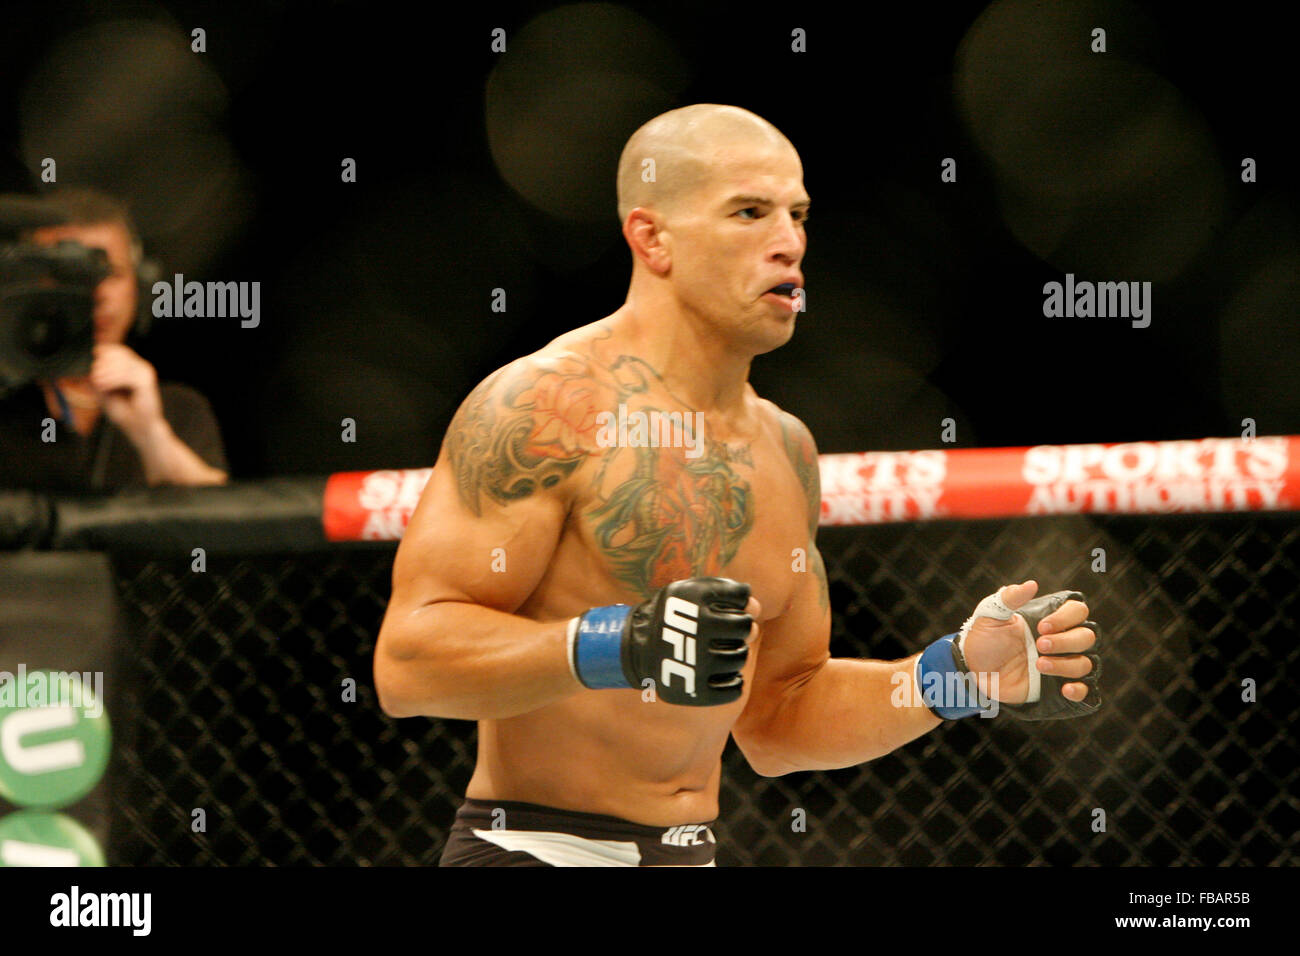 Leonardo Mafra during UFC Fight Night 72: Bisping vs Leites at The SSE Hydro on Saturday the 18 of July 2015, Glasgow, - Stock Image